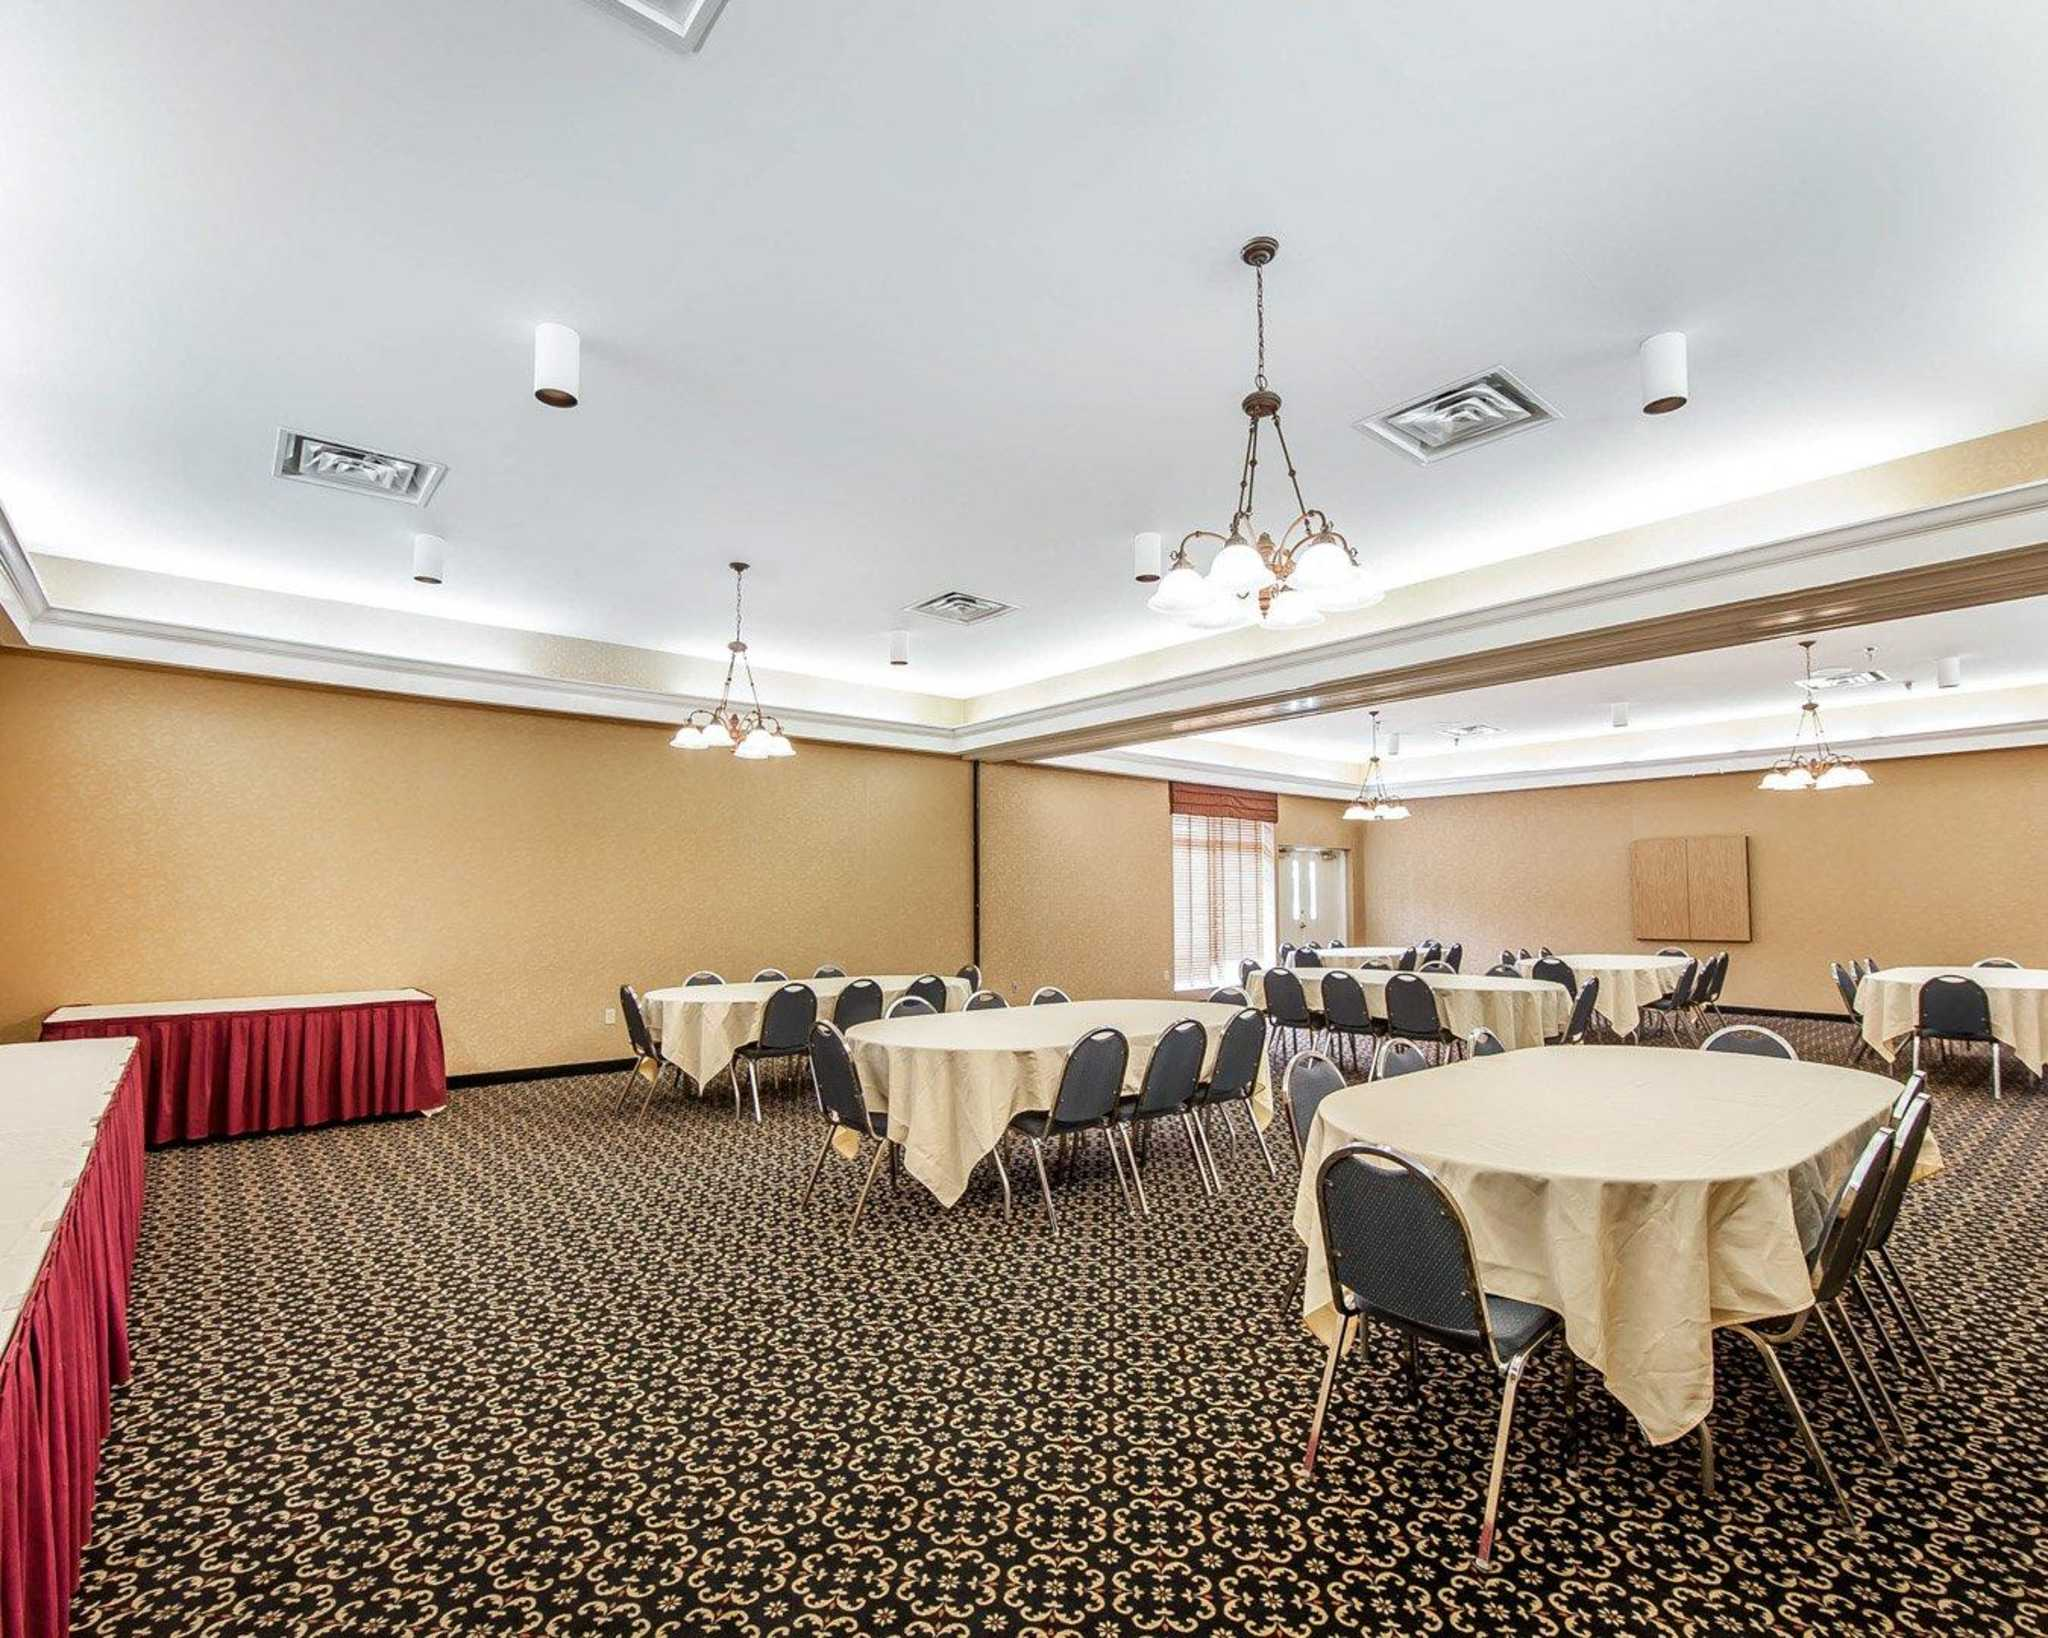 MainStay Suites Conference Center image 15